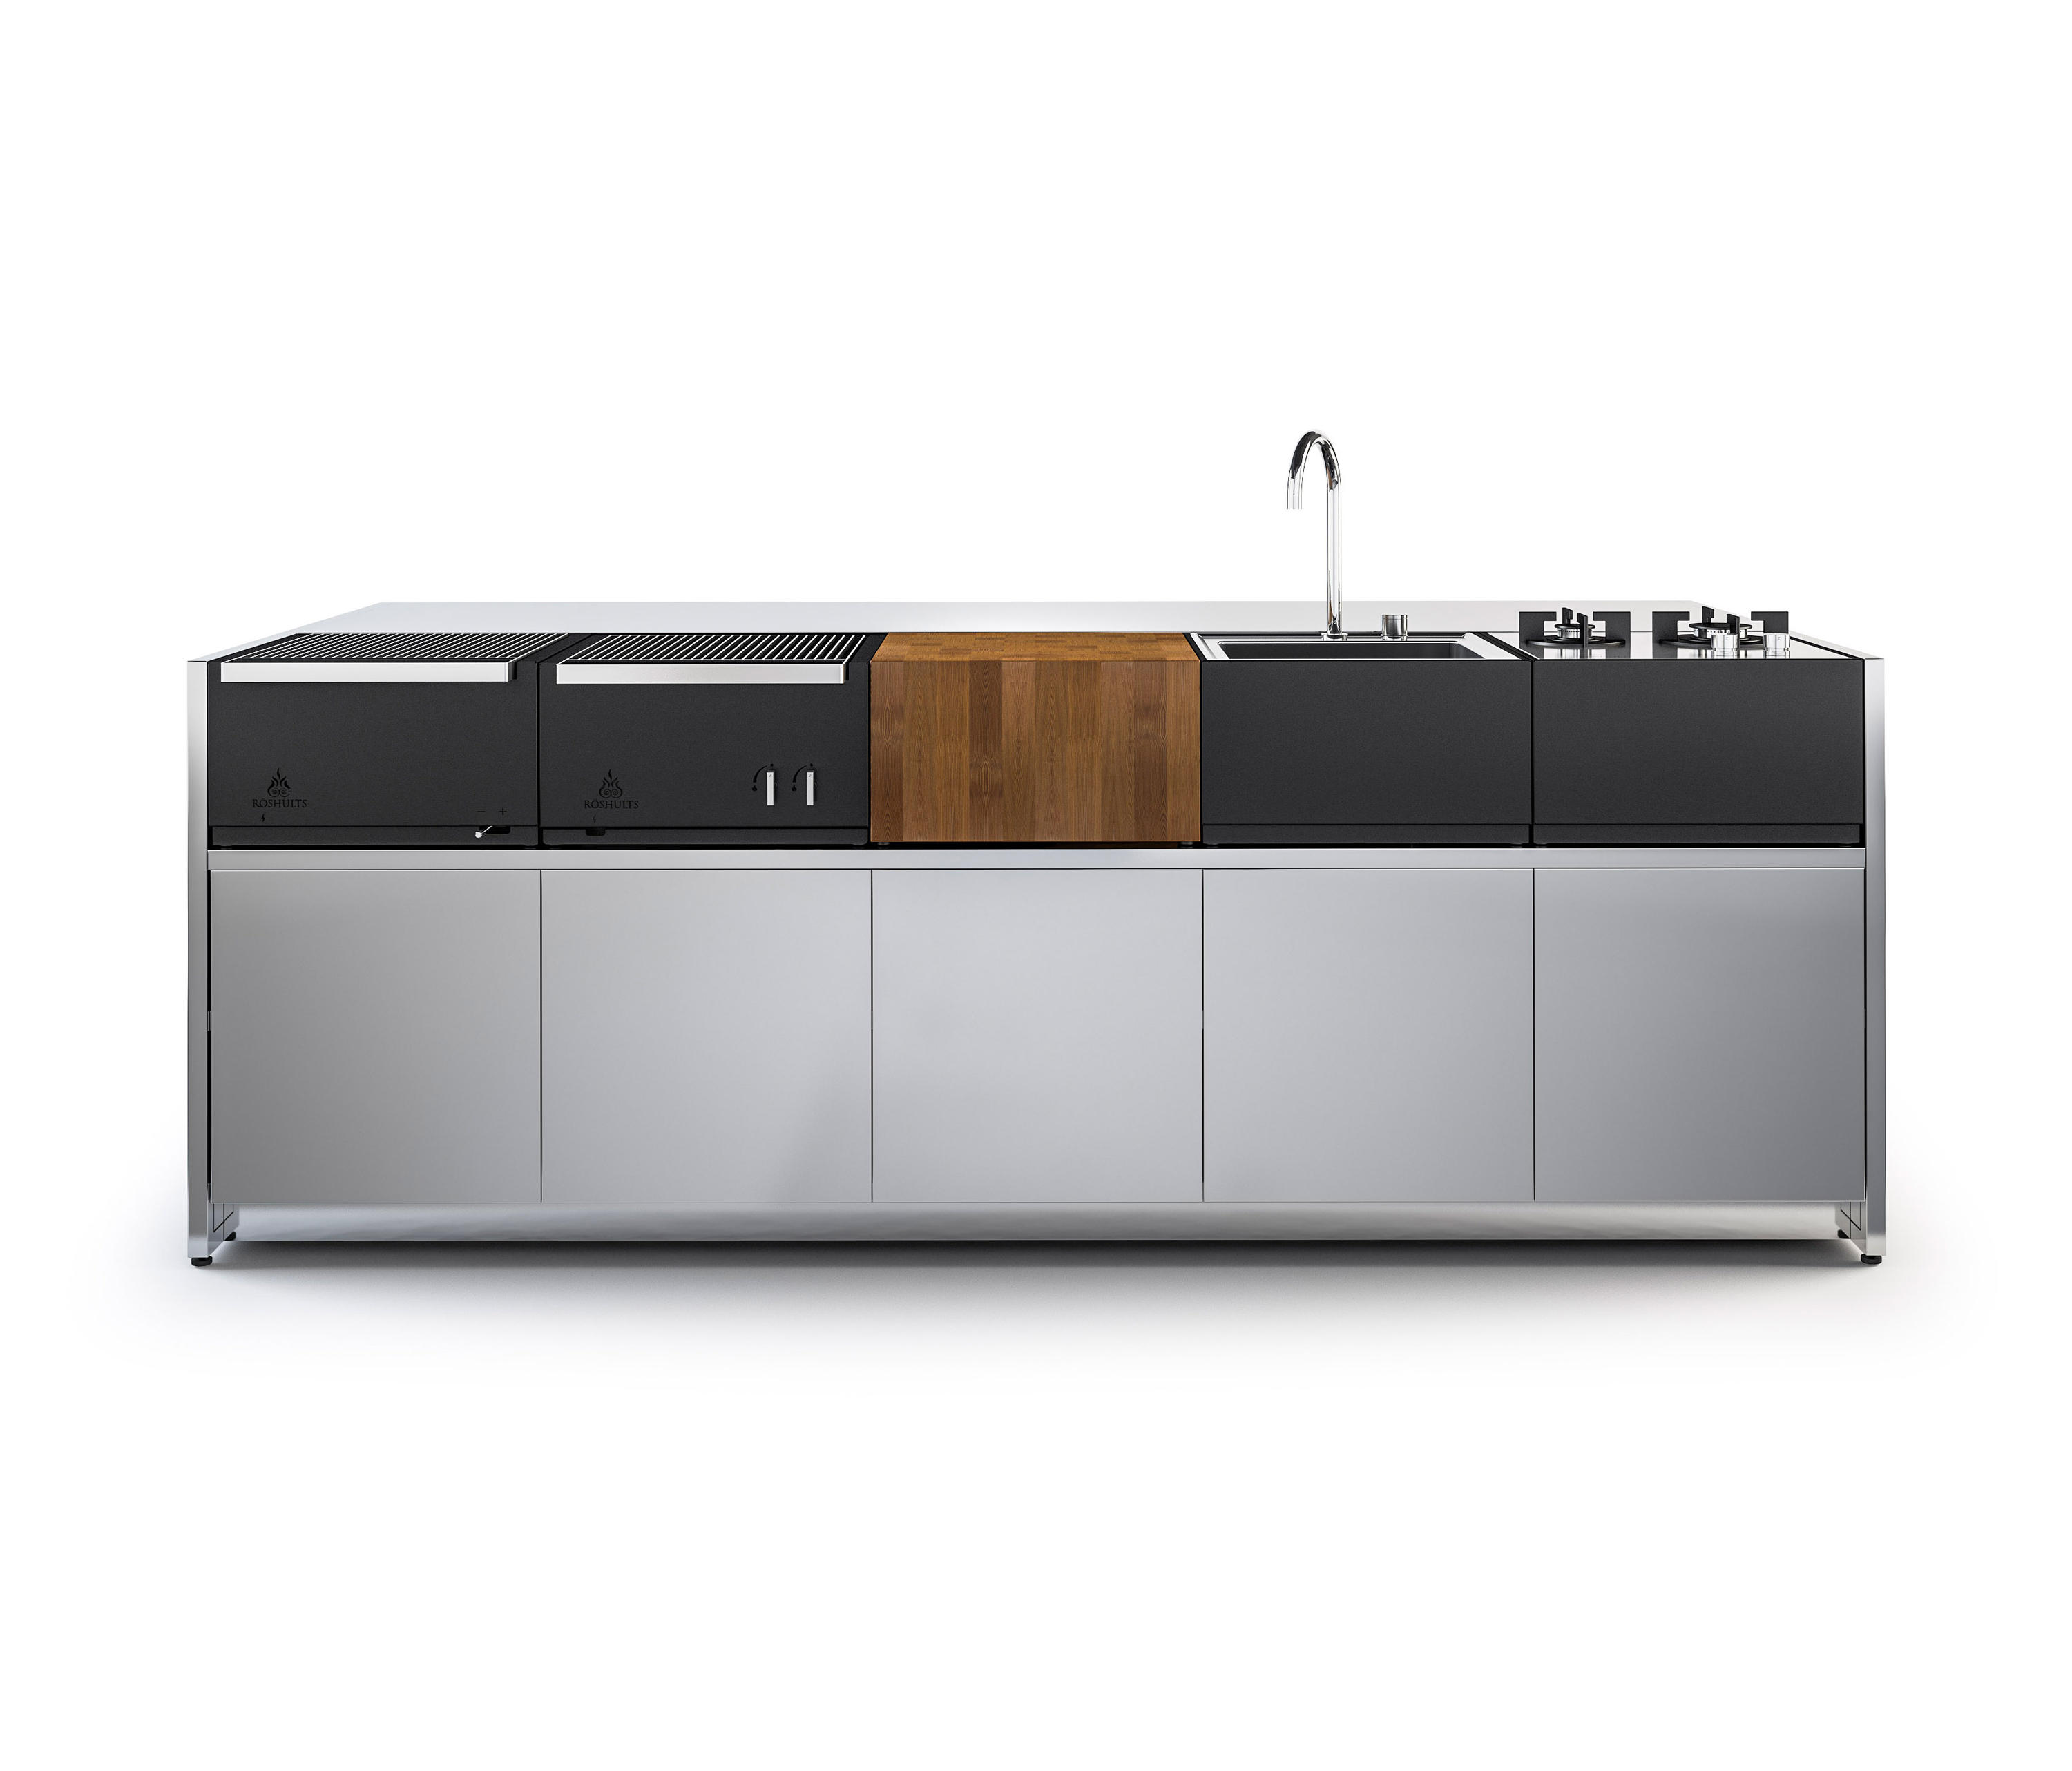 KITCHEN ISLAND 5 MODULES - Outdoor kitchens from Röshults | Architonic